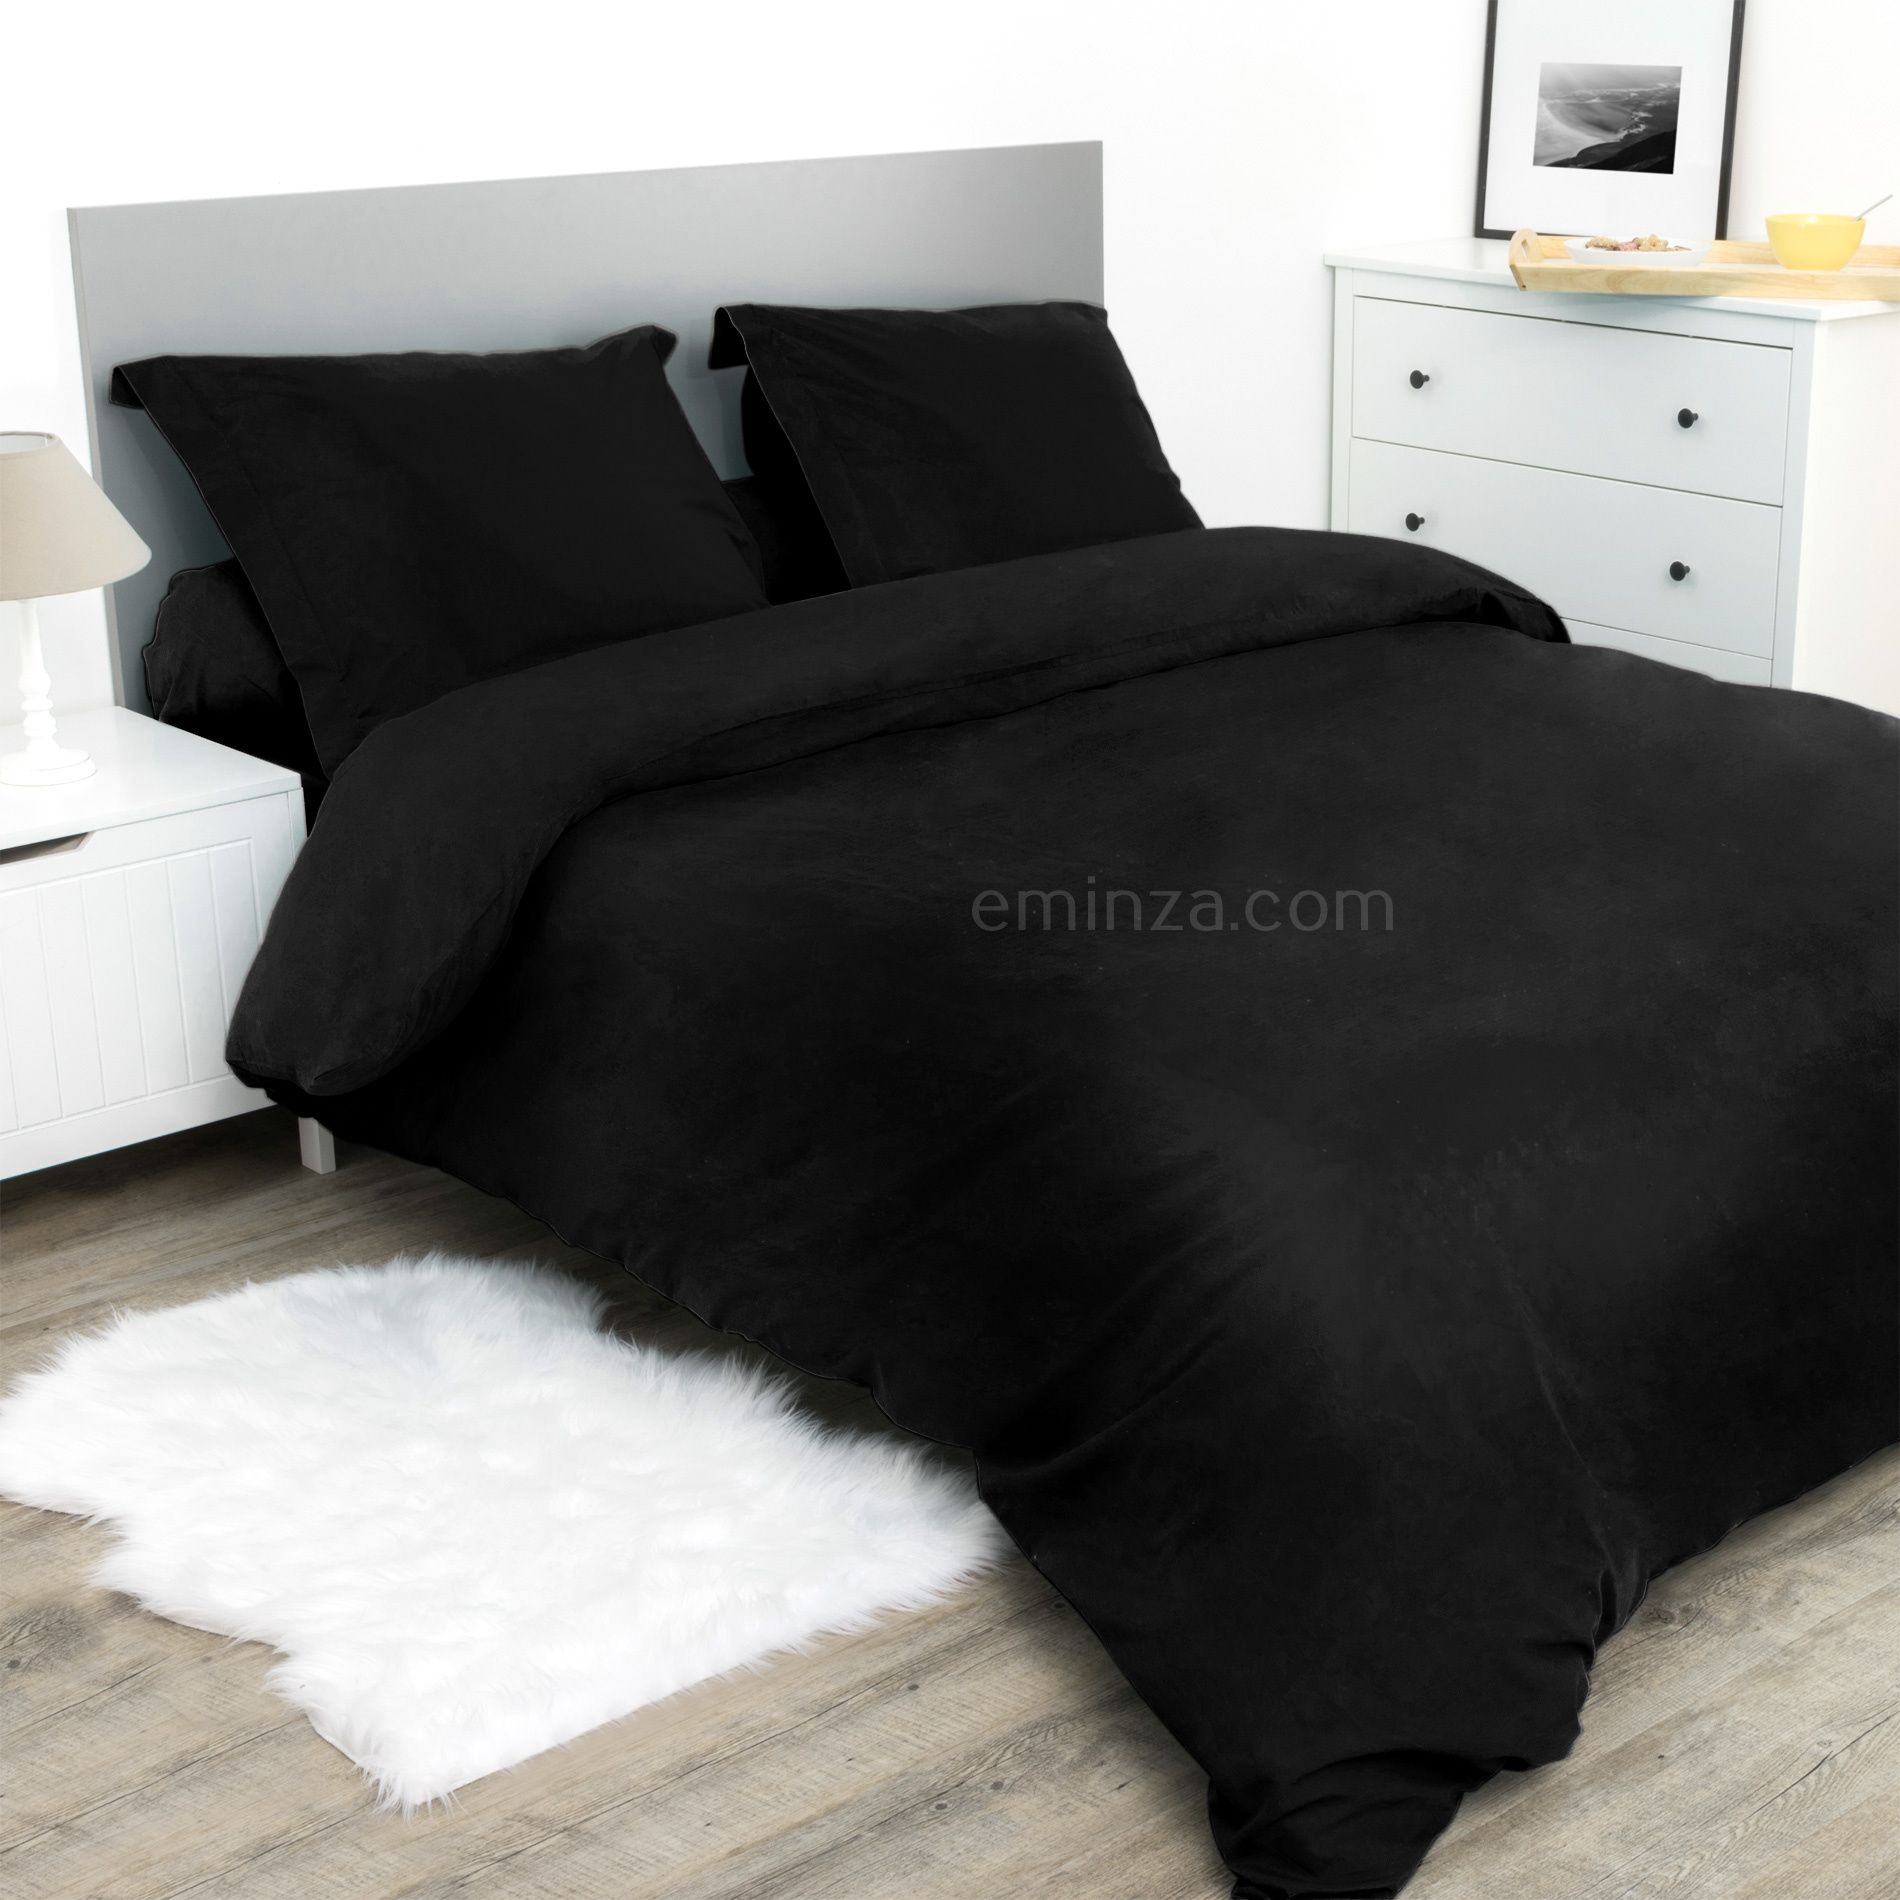 taie d 39 oreiller rectangulaire confort noir taie d 39 oreiller traversin eminza. Black Bedroom Furniture Sets. Home Design Ideas